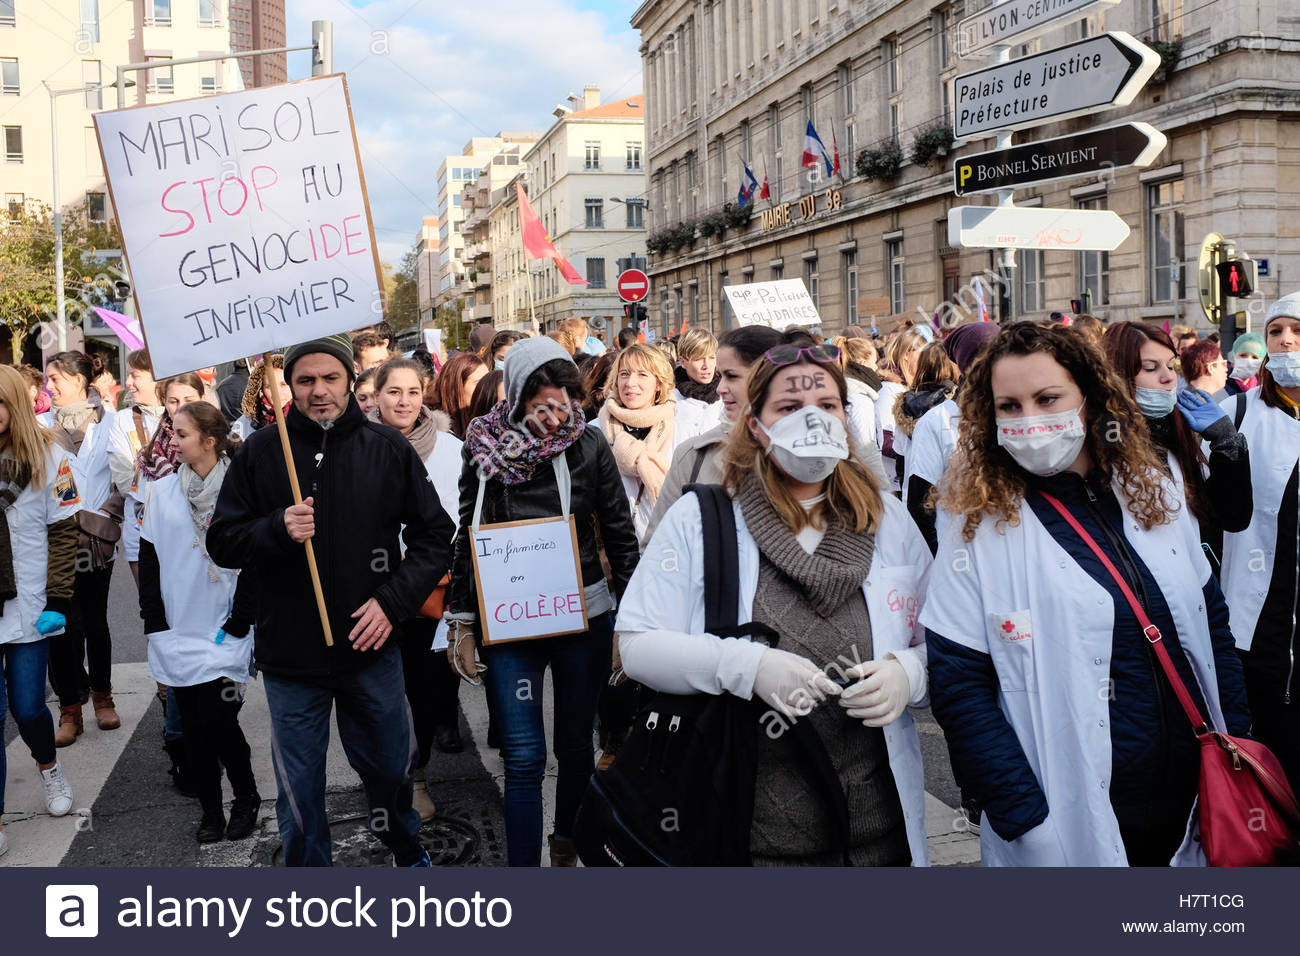 Le Mans, France. 8th Nov, 2016. A protester holds a sign reading 'Marisol, stop the nurse genocide' as nurses - Stock Image